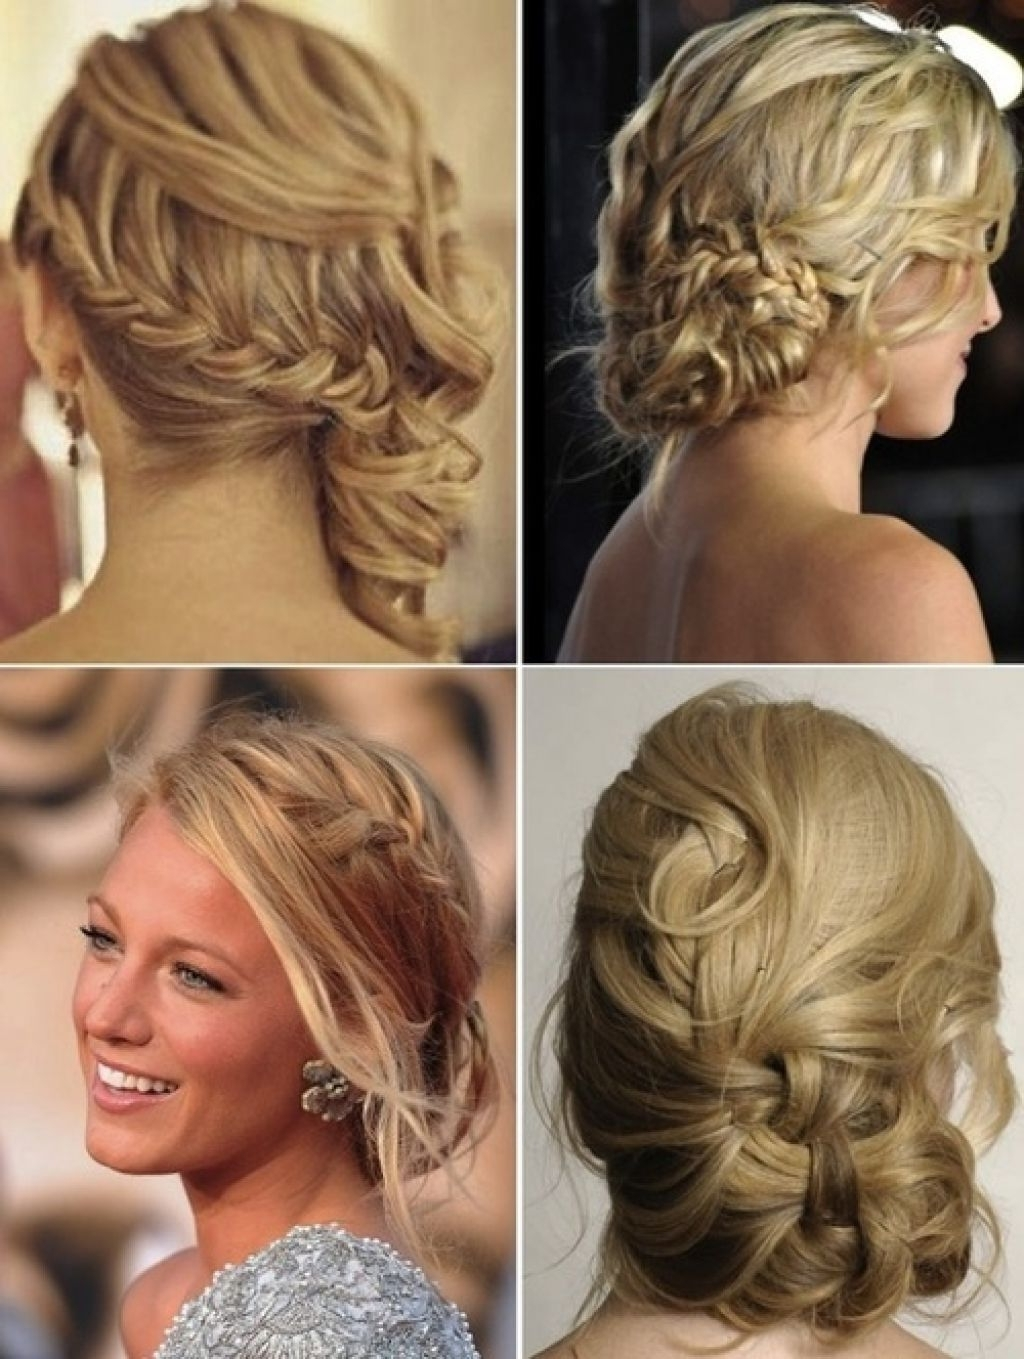 Trendy Simple Wedding Hairstyles For Long Hair Thick With Regard To Casual Wedding Hairstyles For Long Hair – Hairstyle For Women & Man (View 13 of 15)